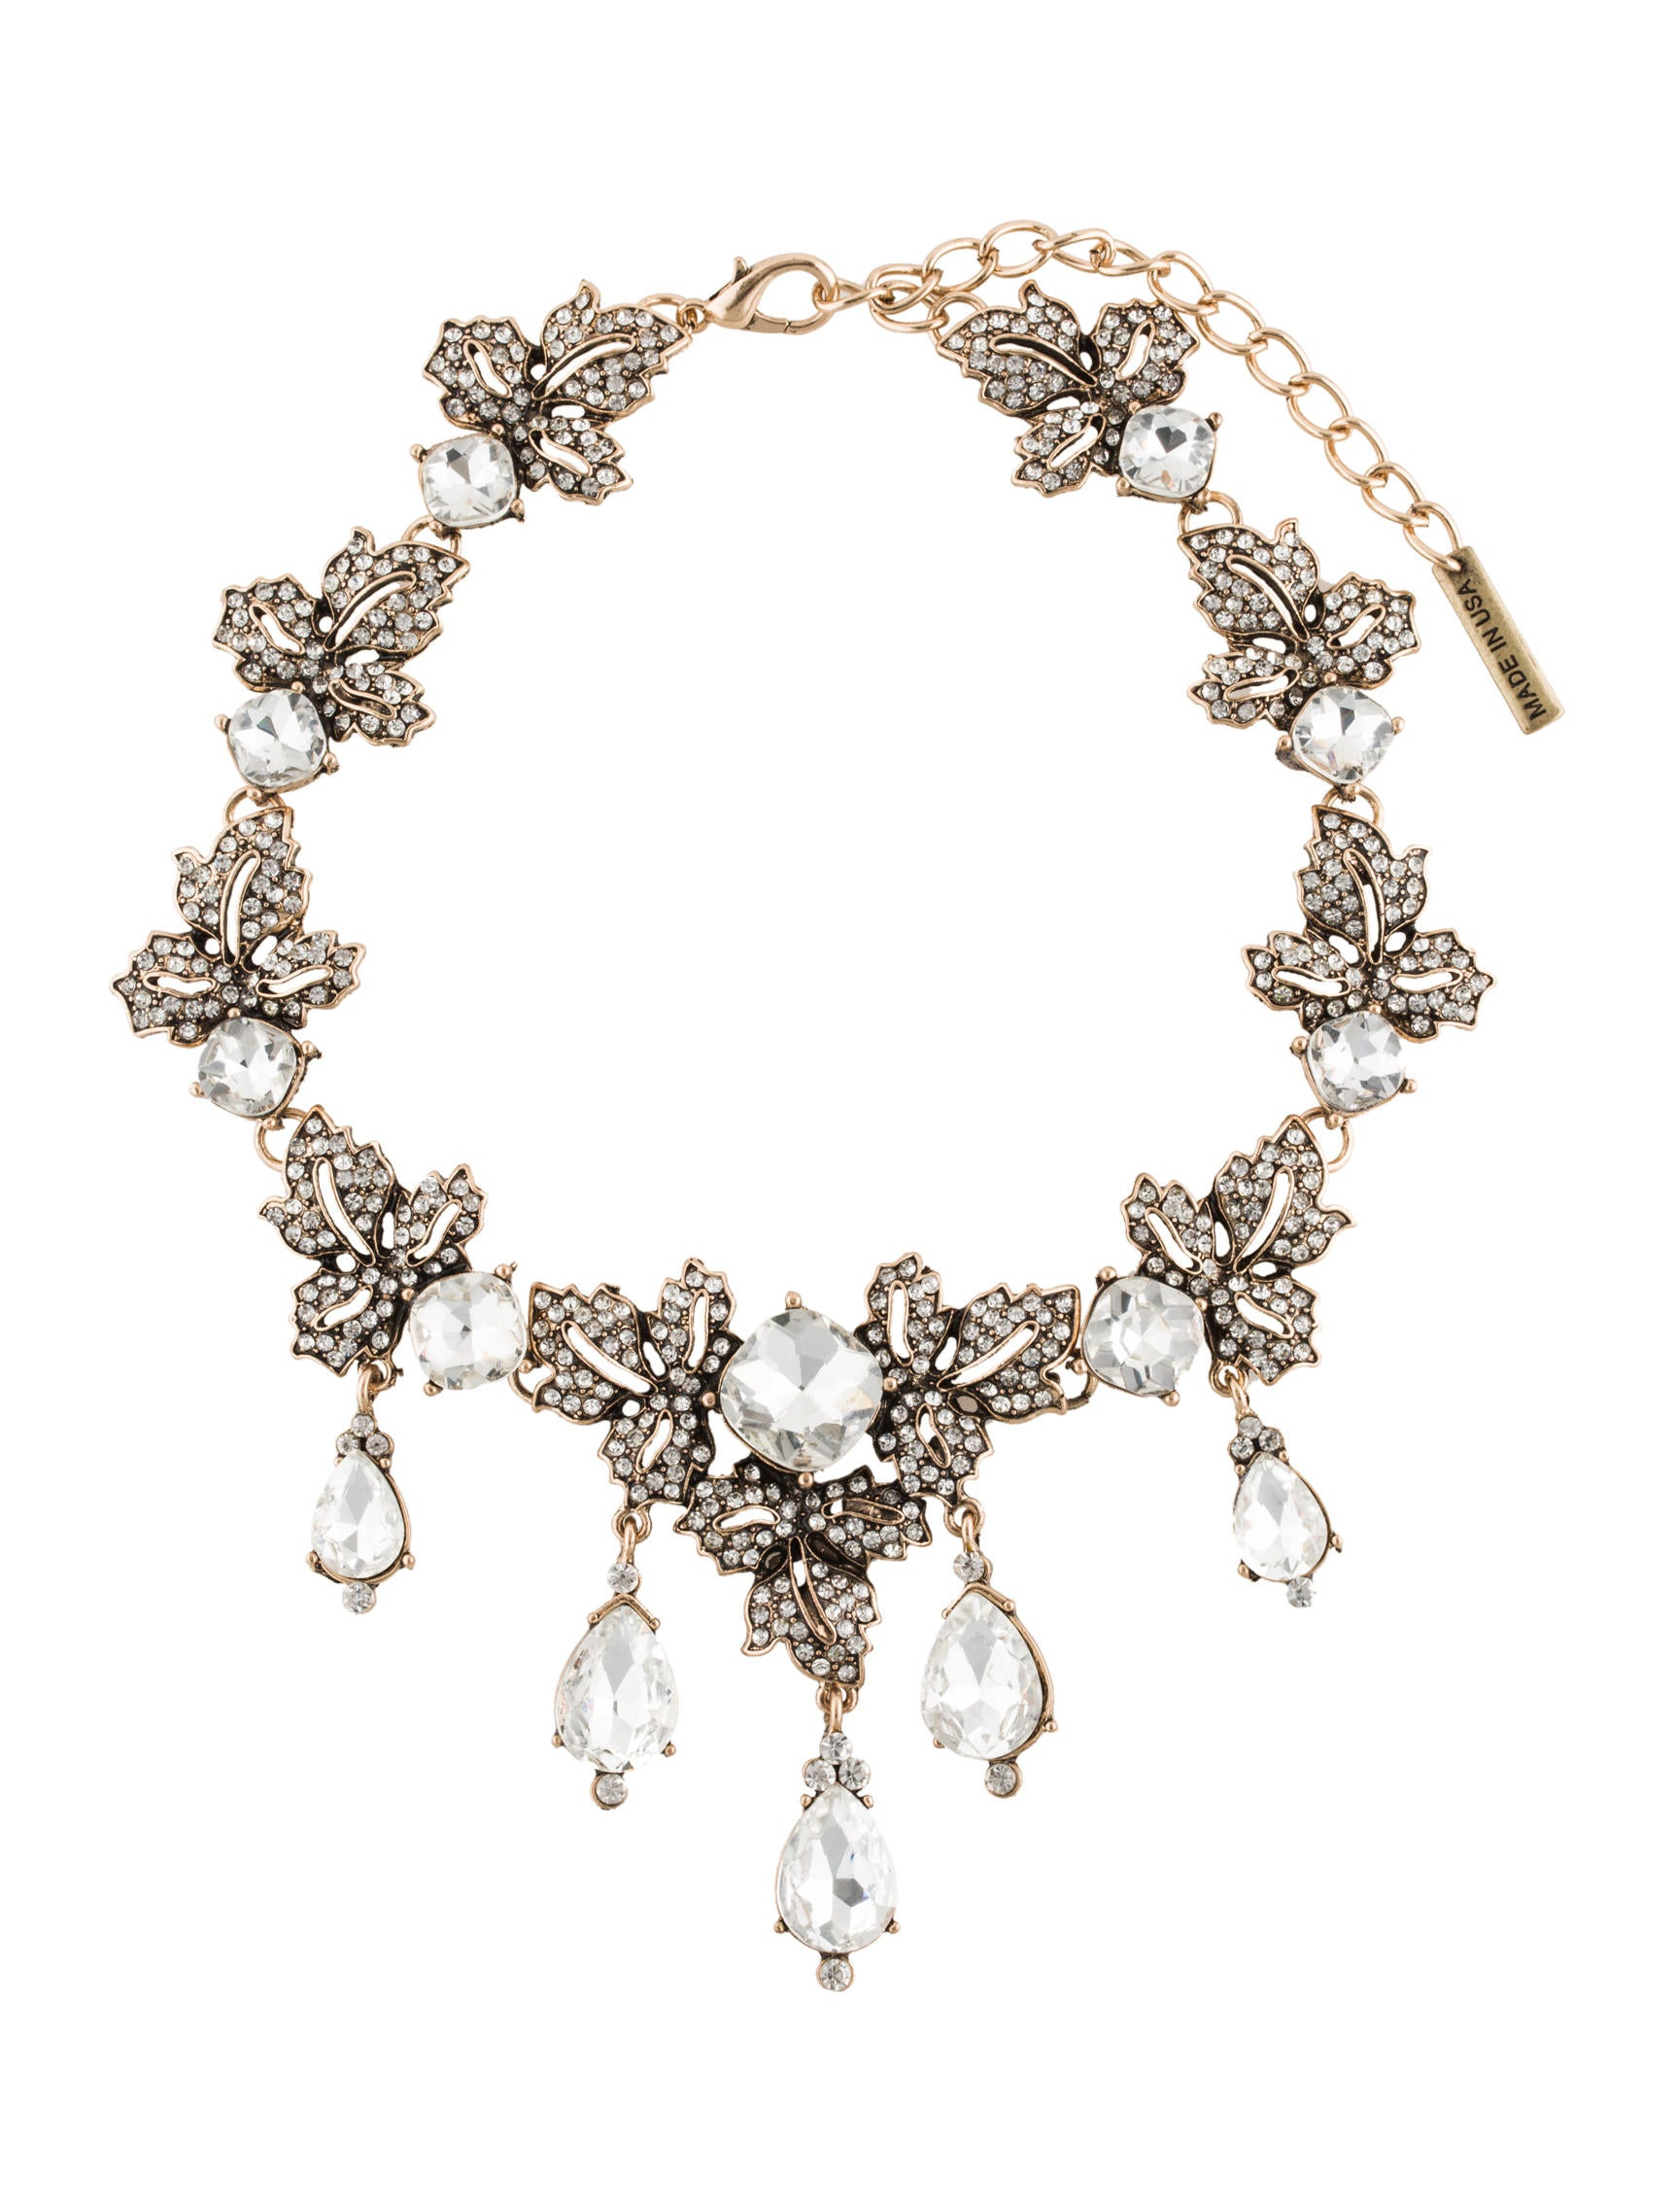 Thing in addition Oscar De La Renta Crystal Leaf Collar Necklace 6 moreover Thing likewise Thing in addition Vintage Jewellery At The Met Gala 2014. on oscar de la renta leaf necklace